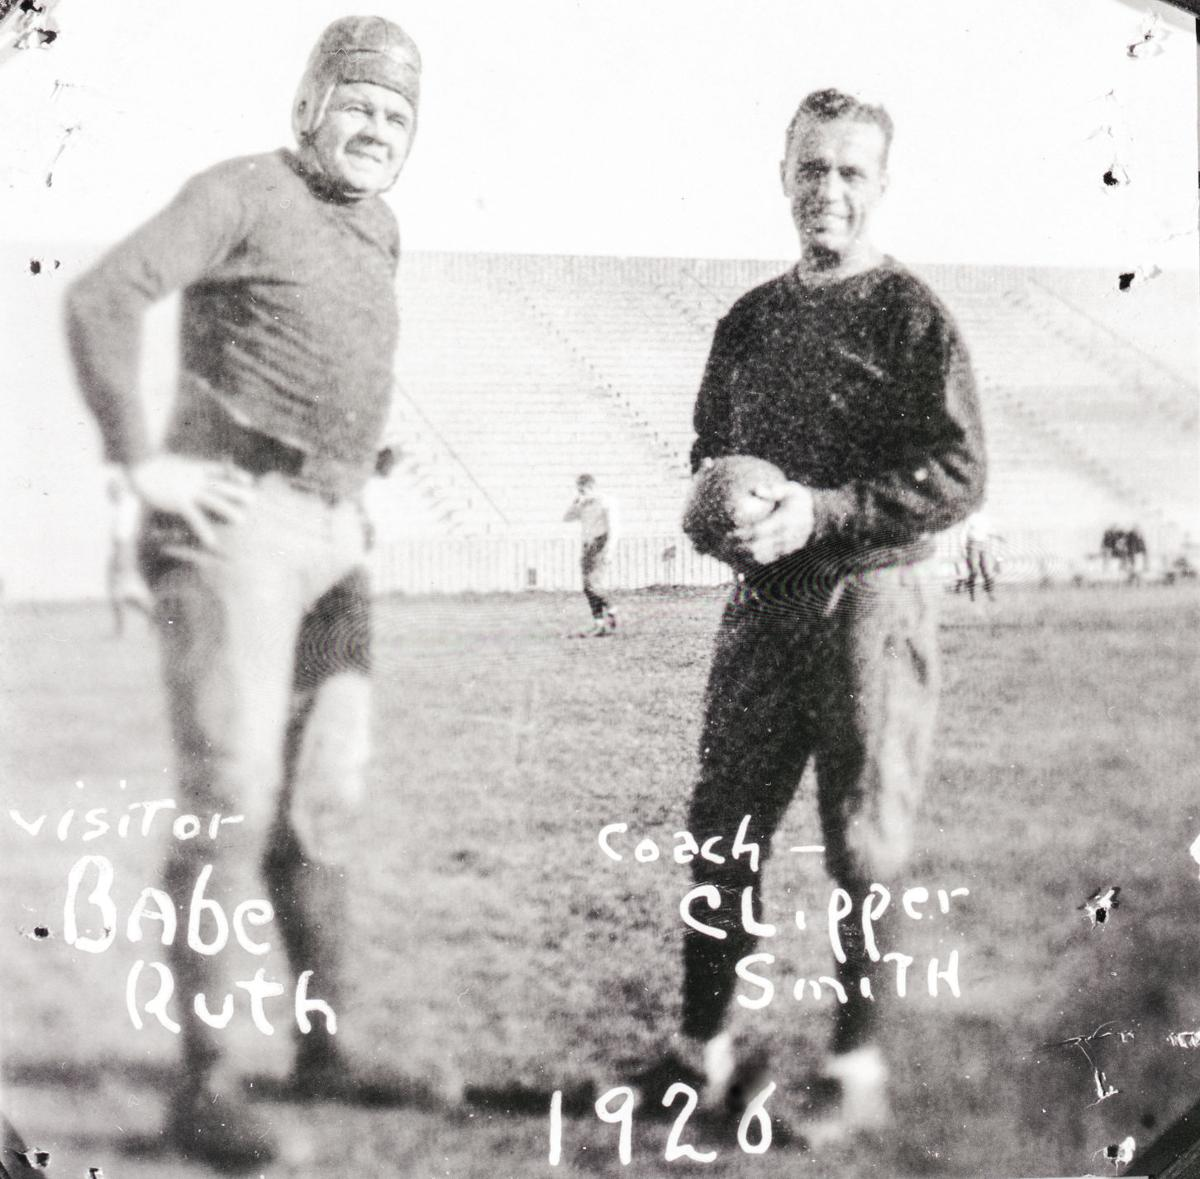 Babe Ruth and Clipper Smith